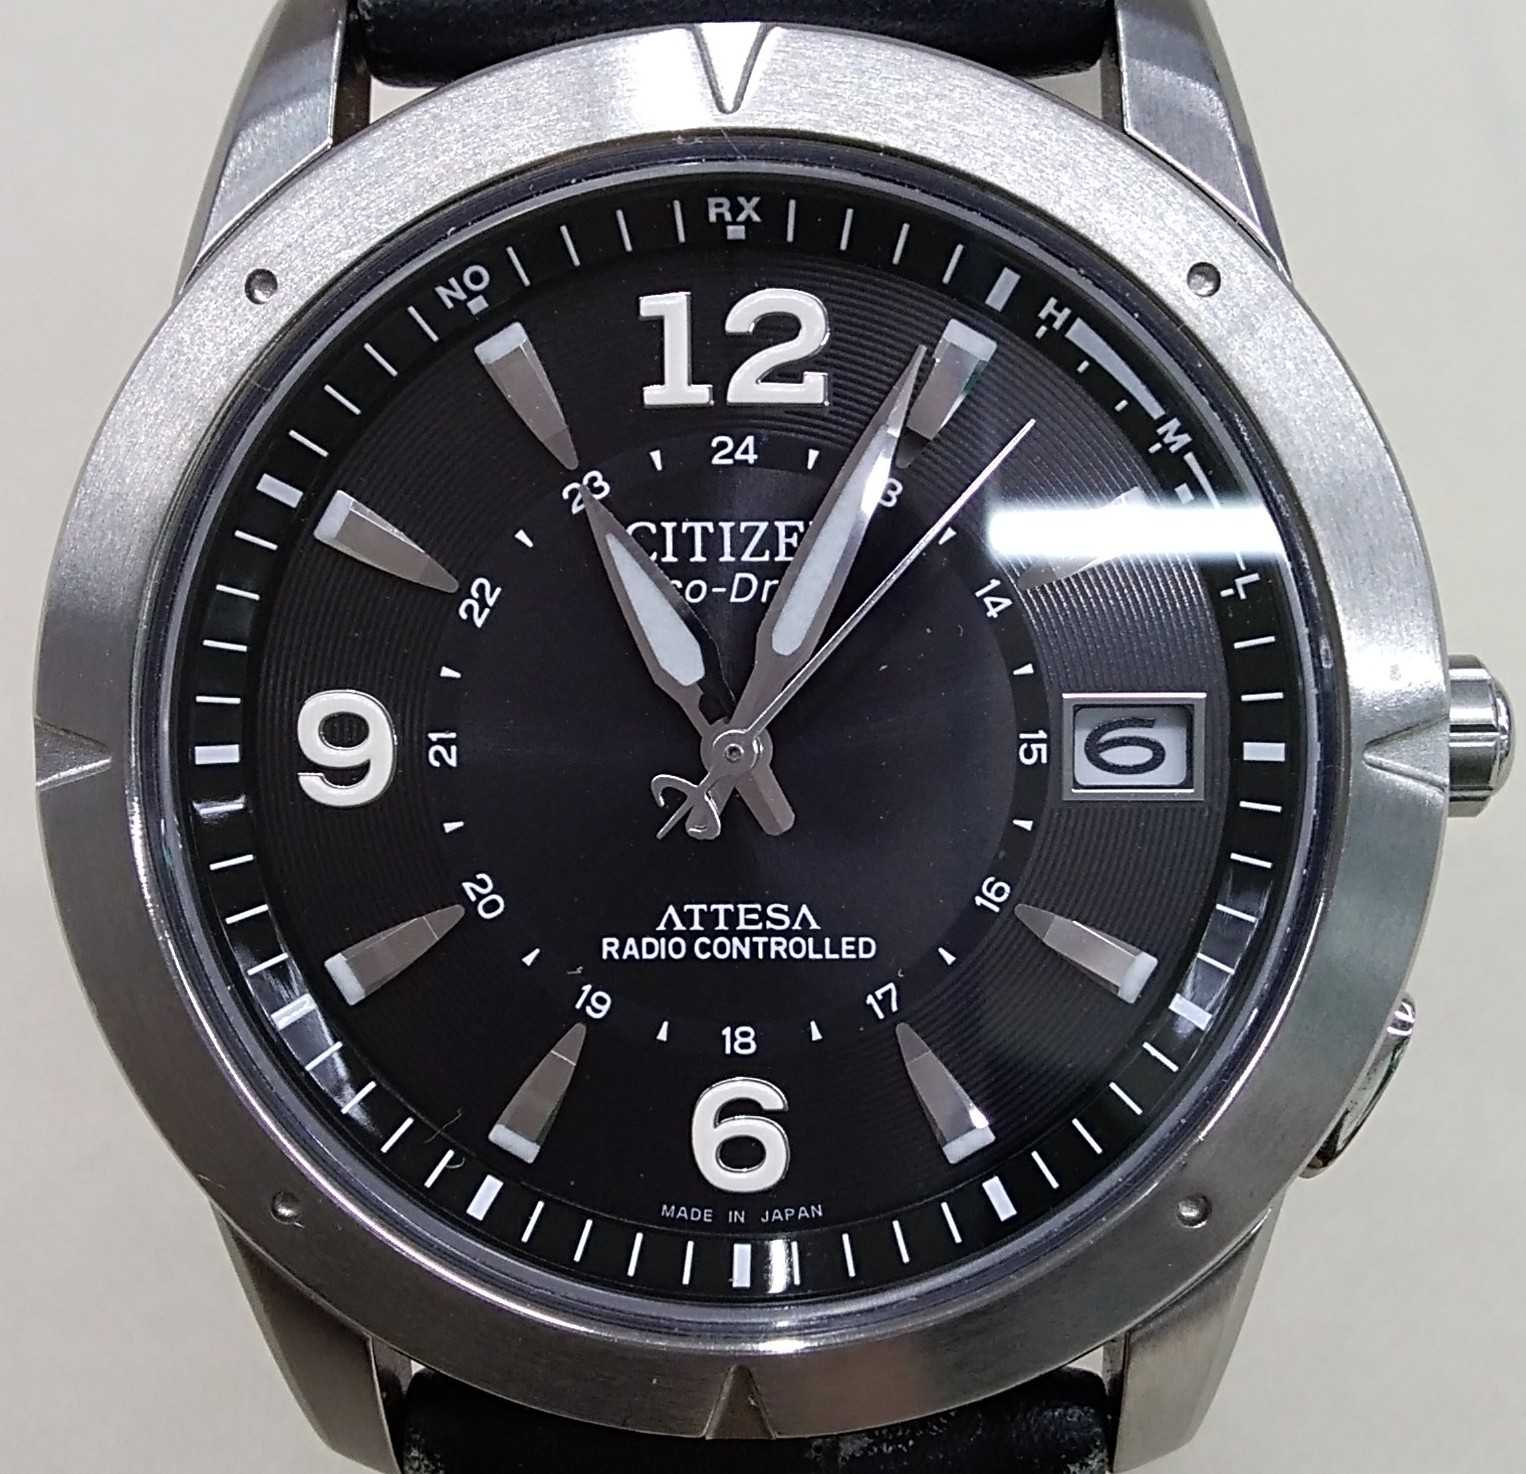 ECO-DRIVE|CITIZEN